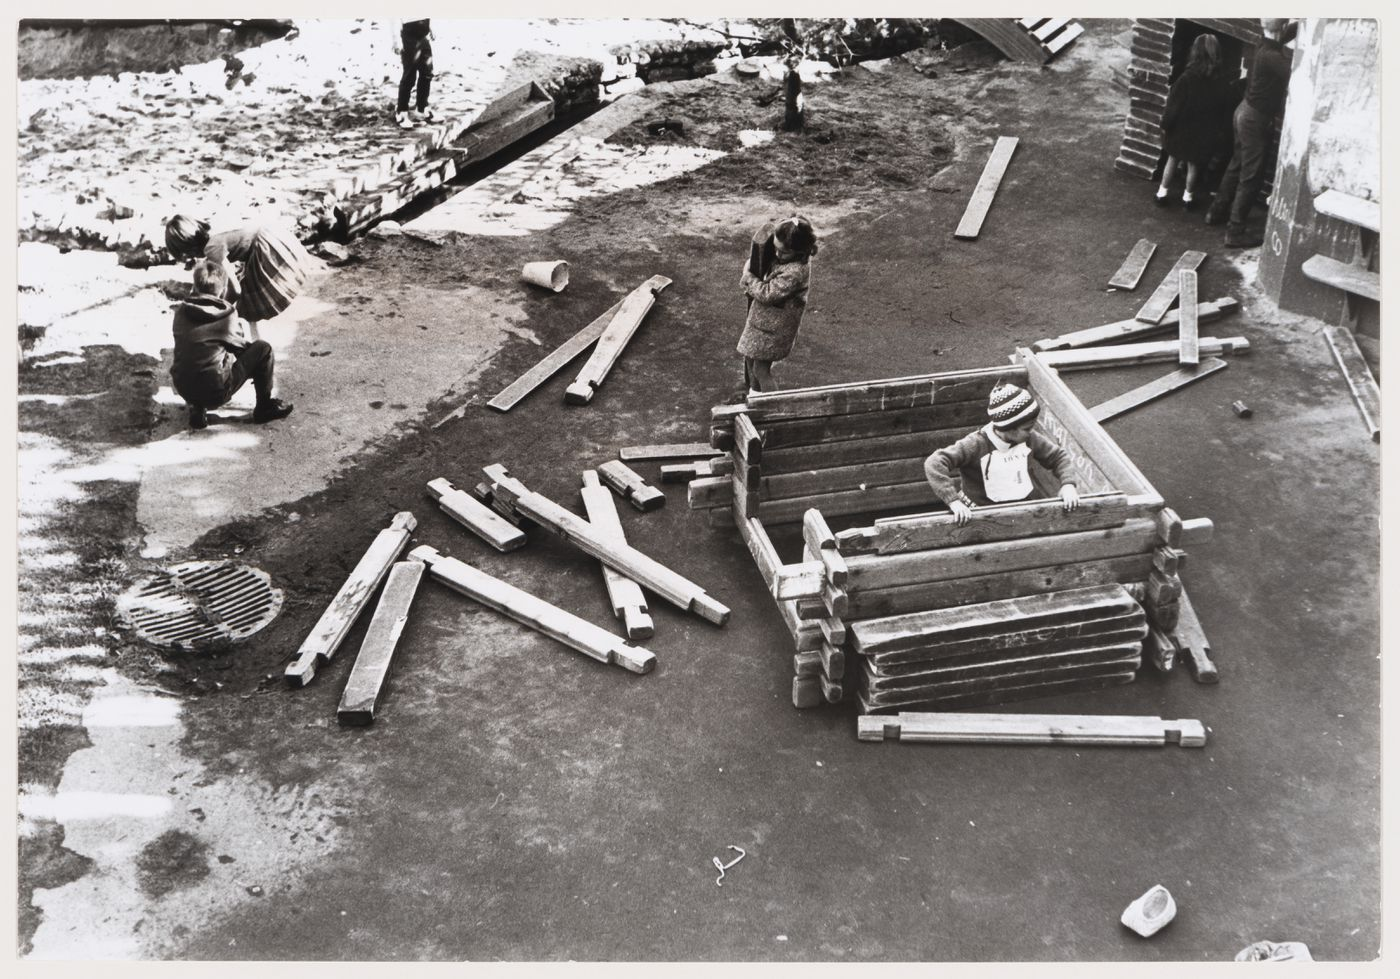 View of children playing at Children's Creative Centre Playground, Canadian Federal Pavilion, Expo '67, Montréal, Québec